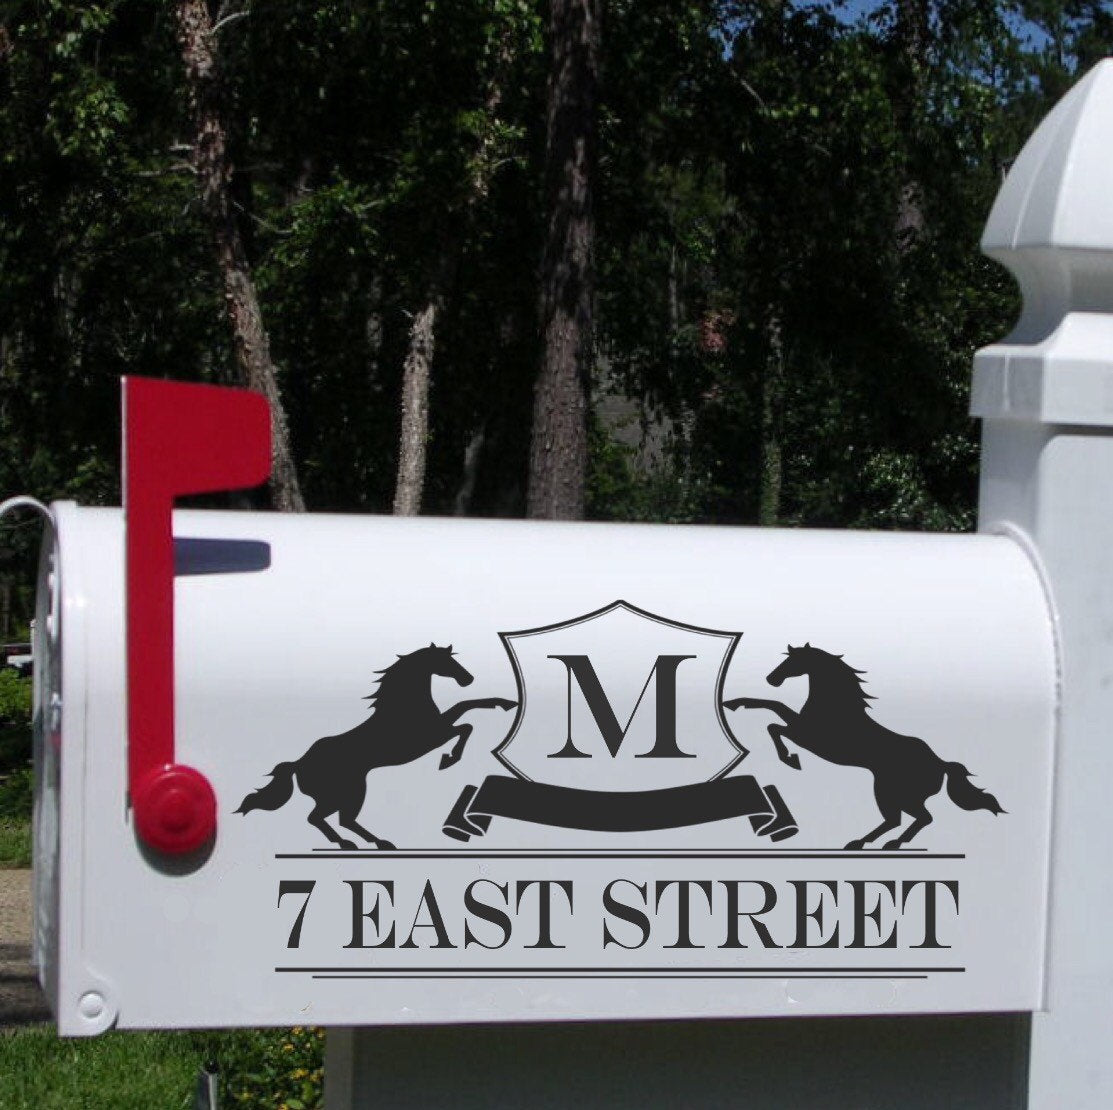 Mailbox Address Decal Stickers // Horse Mailbox Address // Custom Address Decal Stickers // Monogramed Address Decal